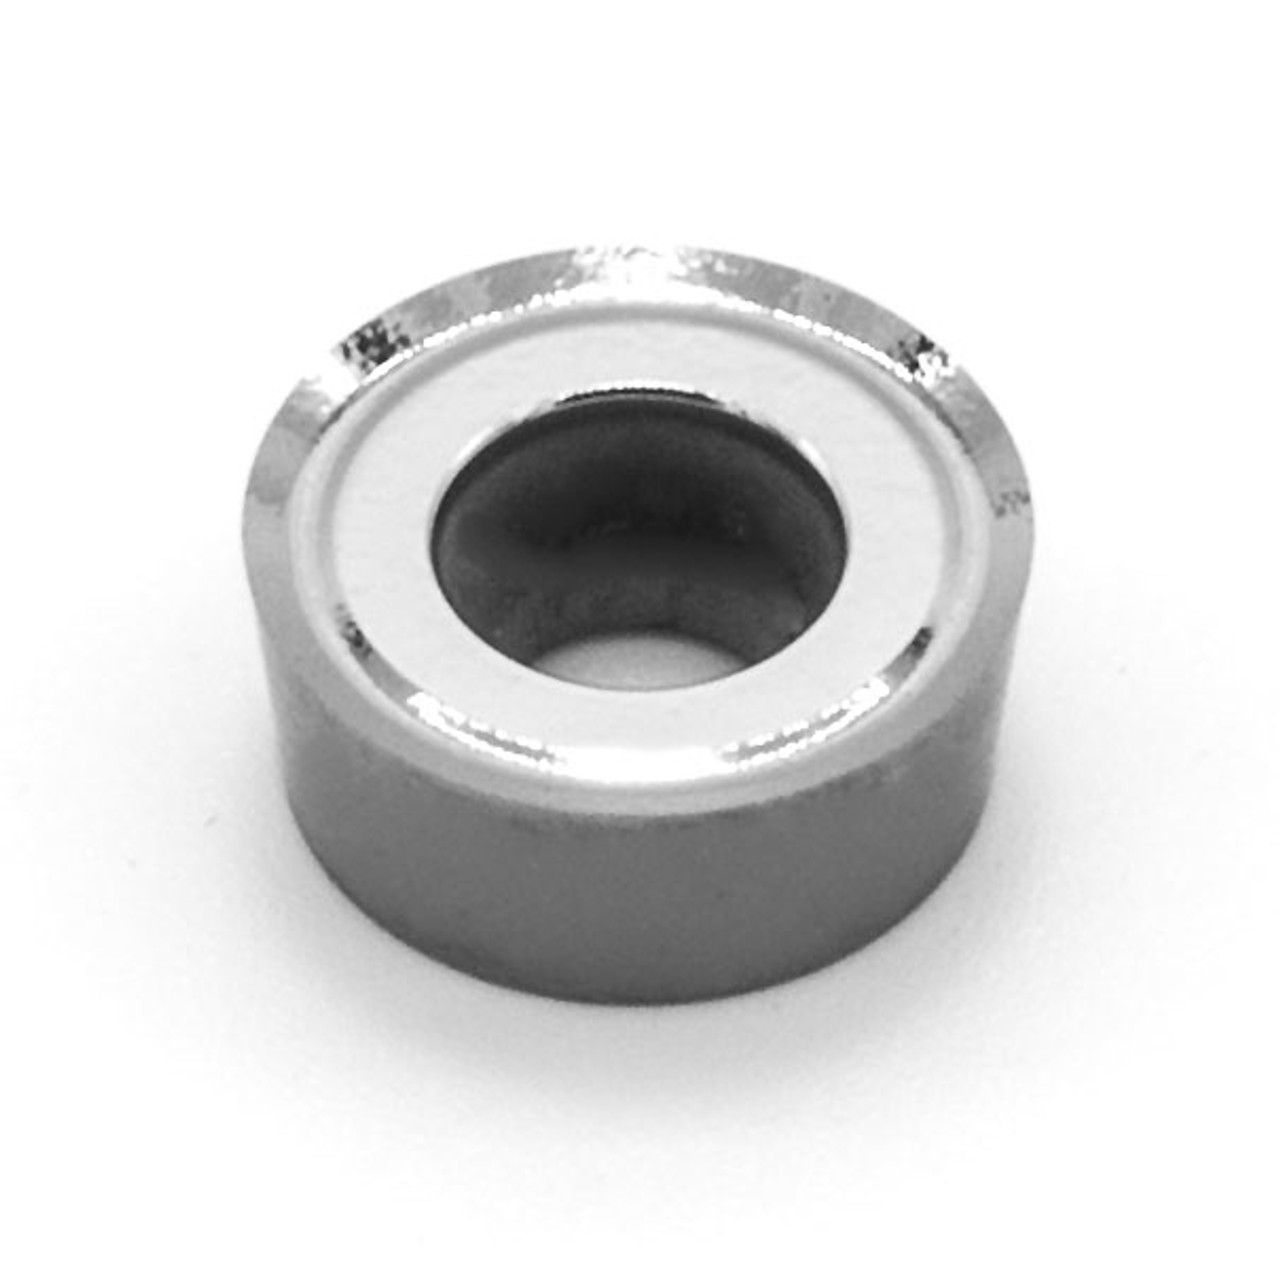 Carbide Replacement cutter for Simple Shear Cutting Finisher